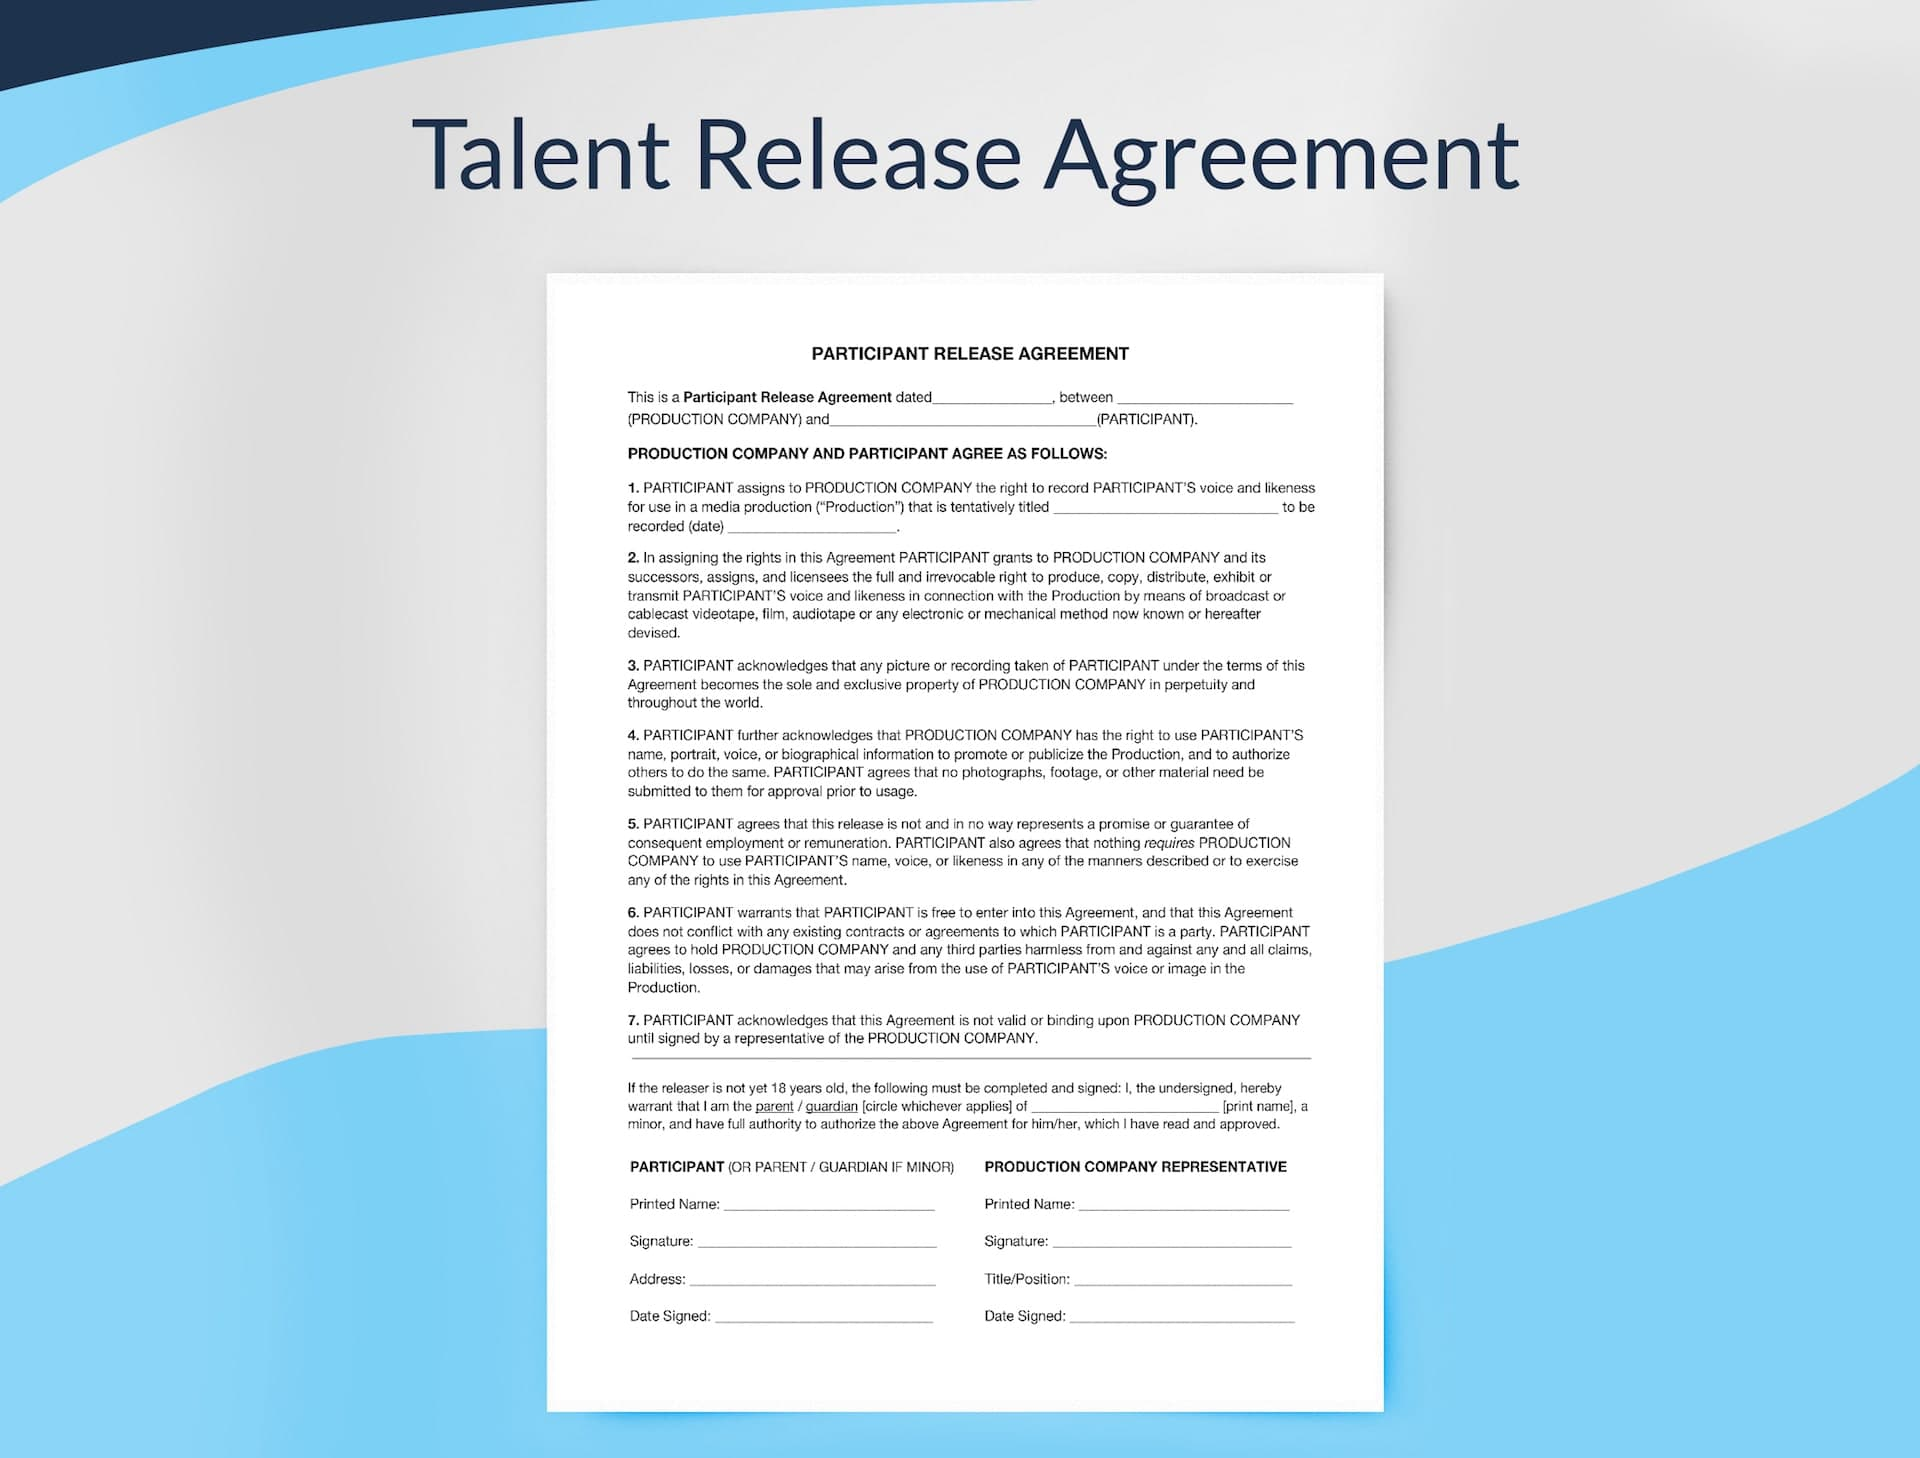 Talent Release Agreement Form For Filmmakers Example